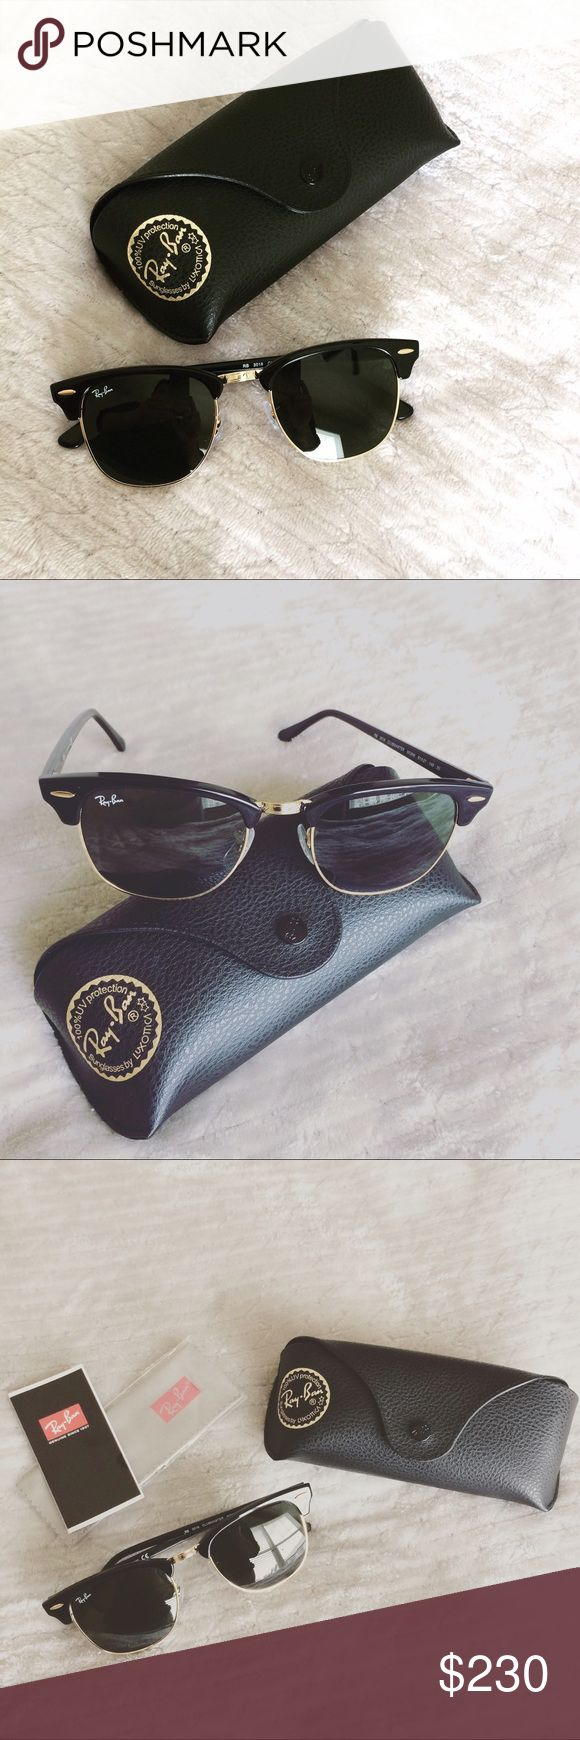 New! Ray-Bans! Unisex; look great in males or females! Classy, everyday sunglasses. New, never used. Final price at $150.00. Ray-Ban Accessories Sunglasses